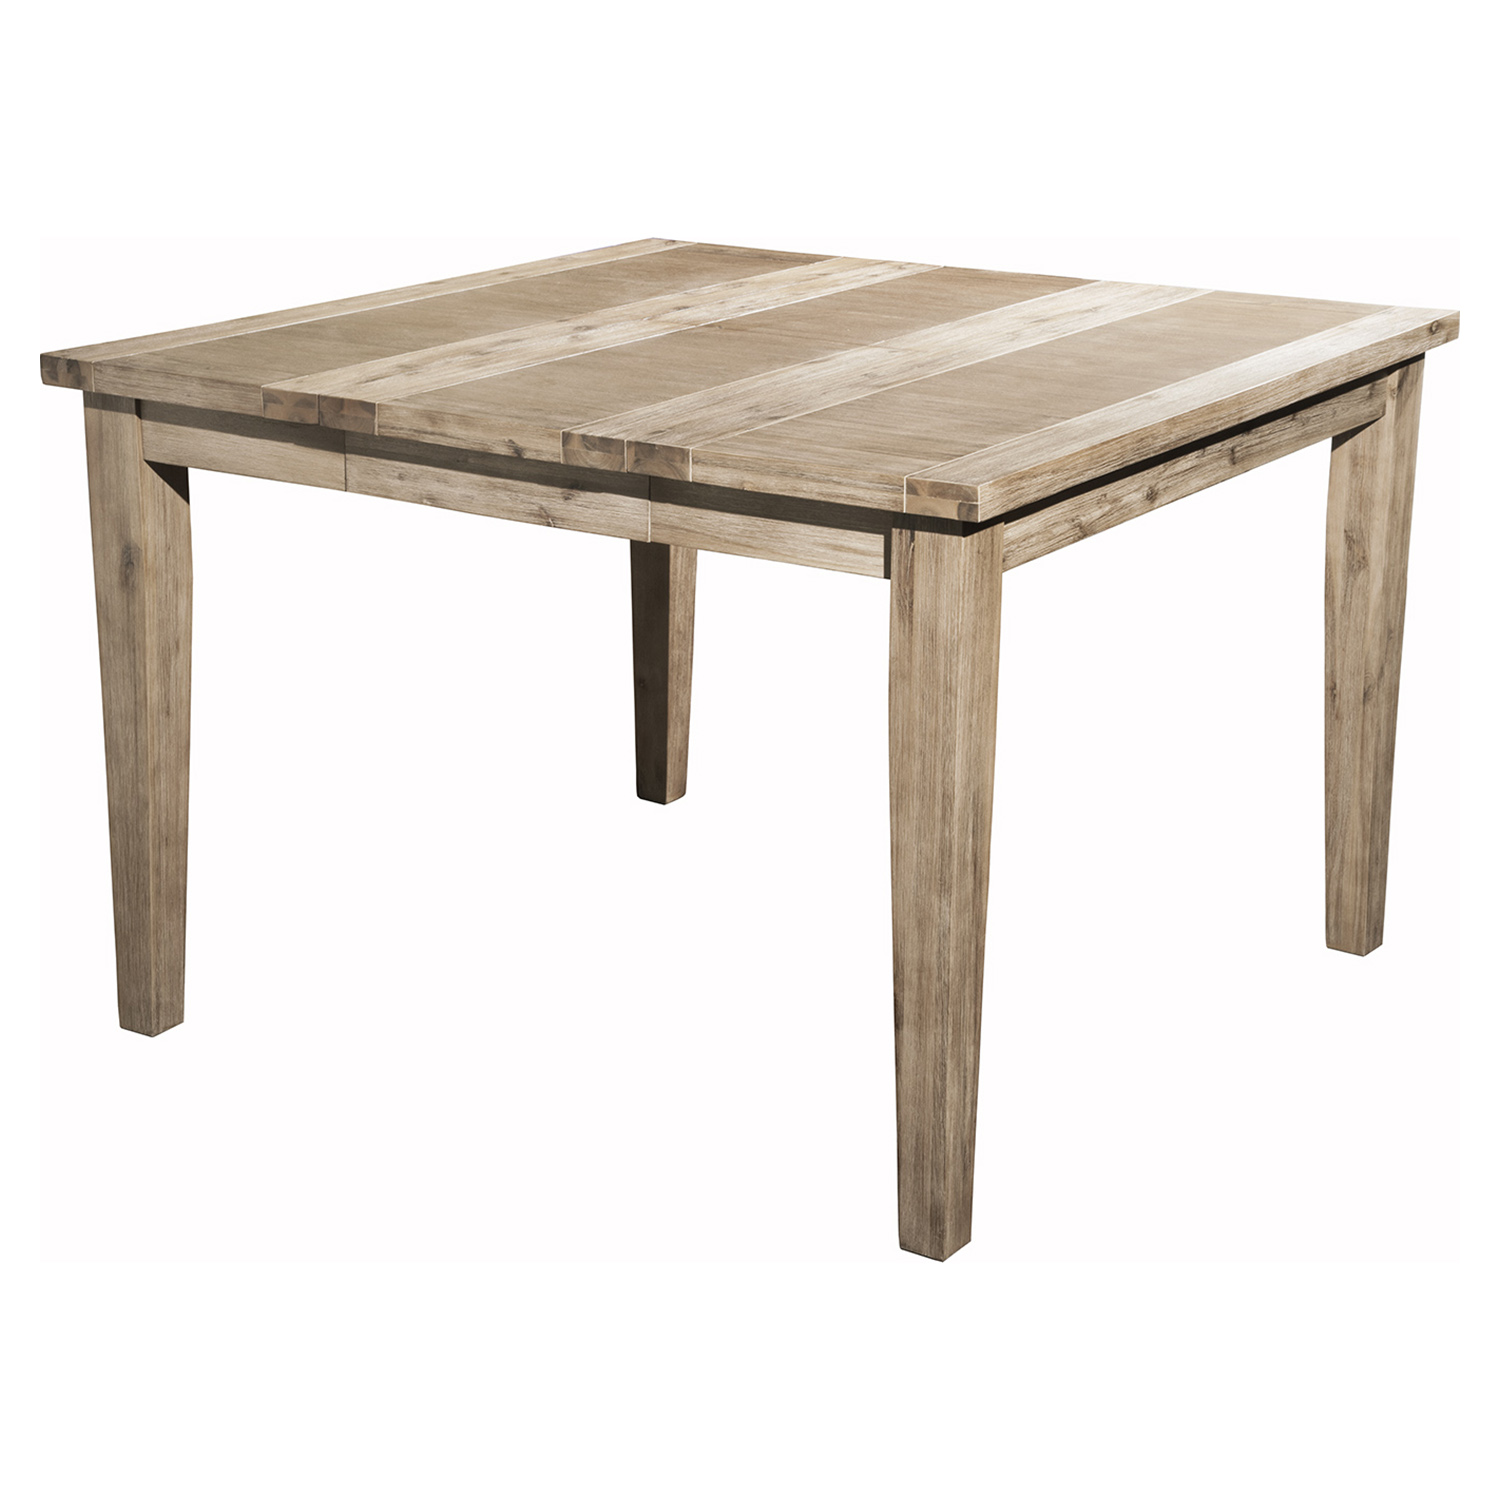 Aspen Extension Pub Table   Butterfly Leaf, Antique Natural   ALP 8812 03  ...